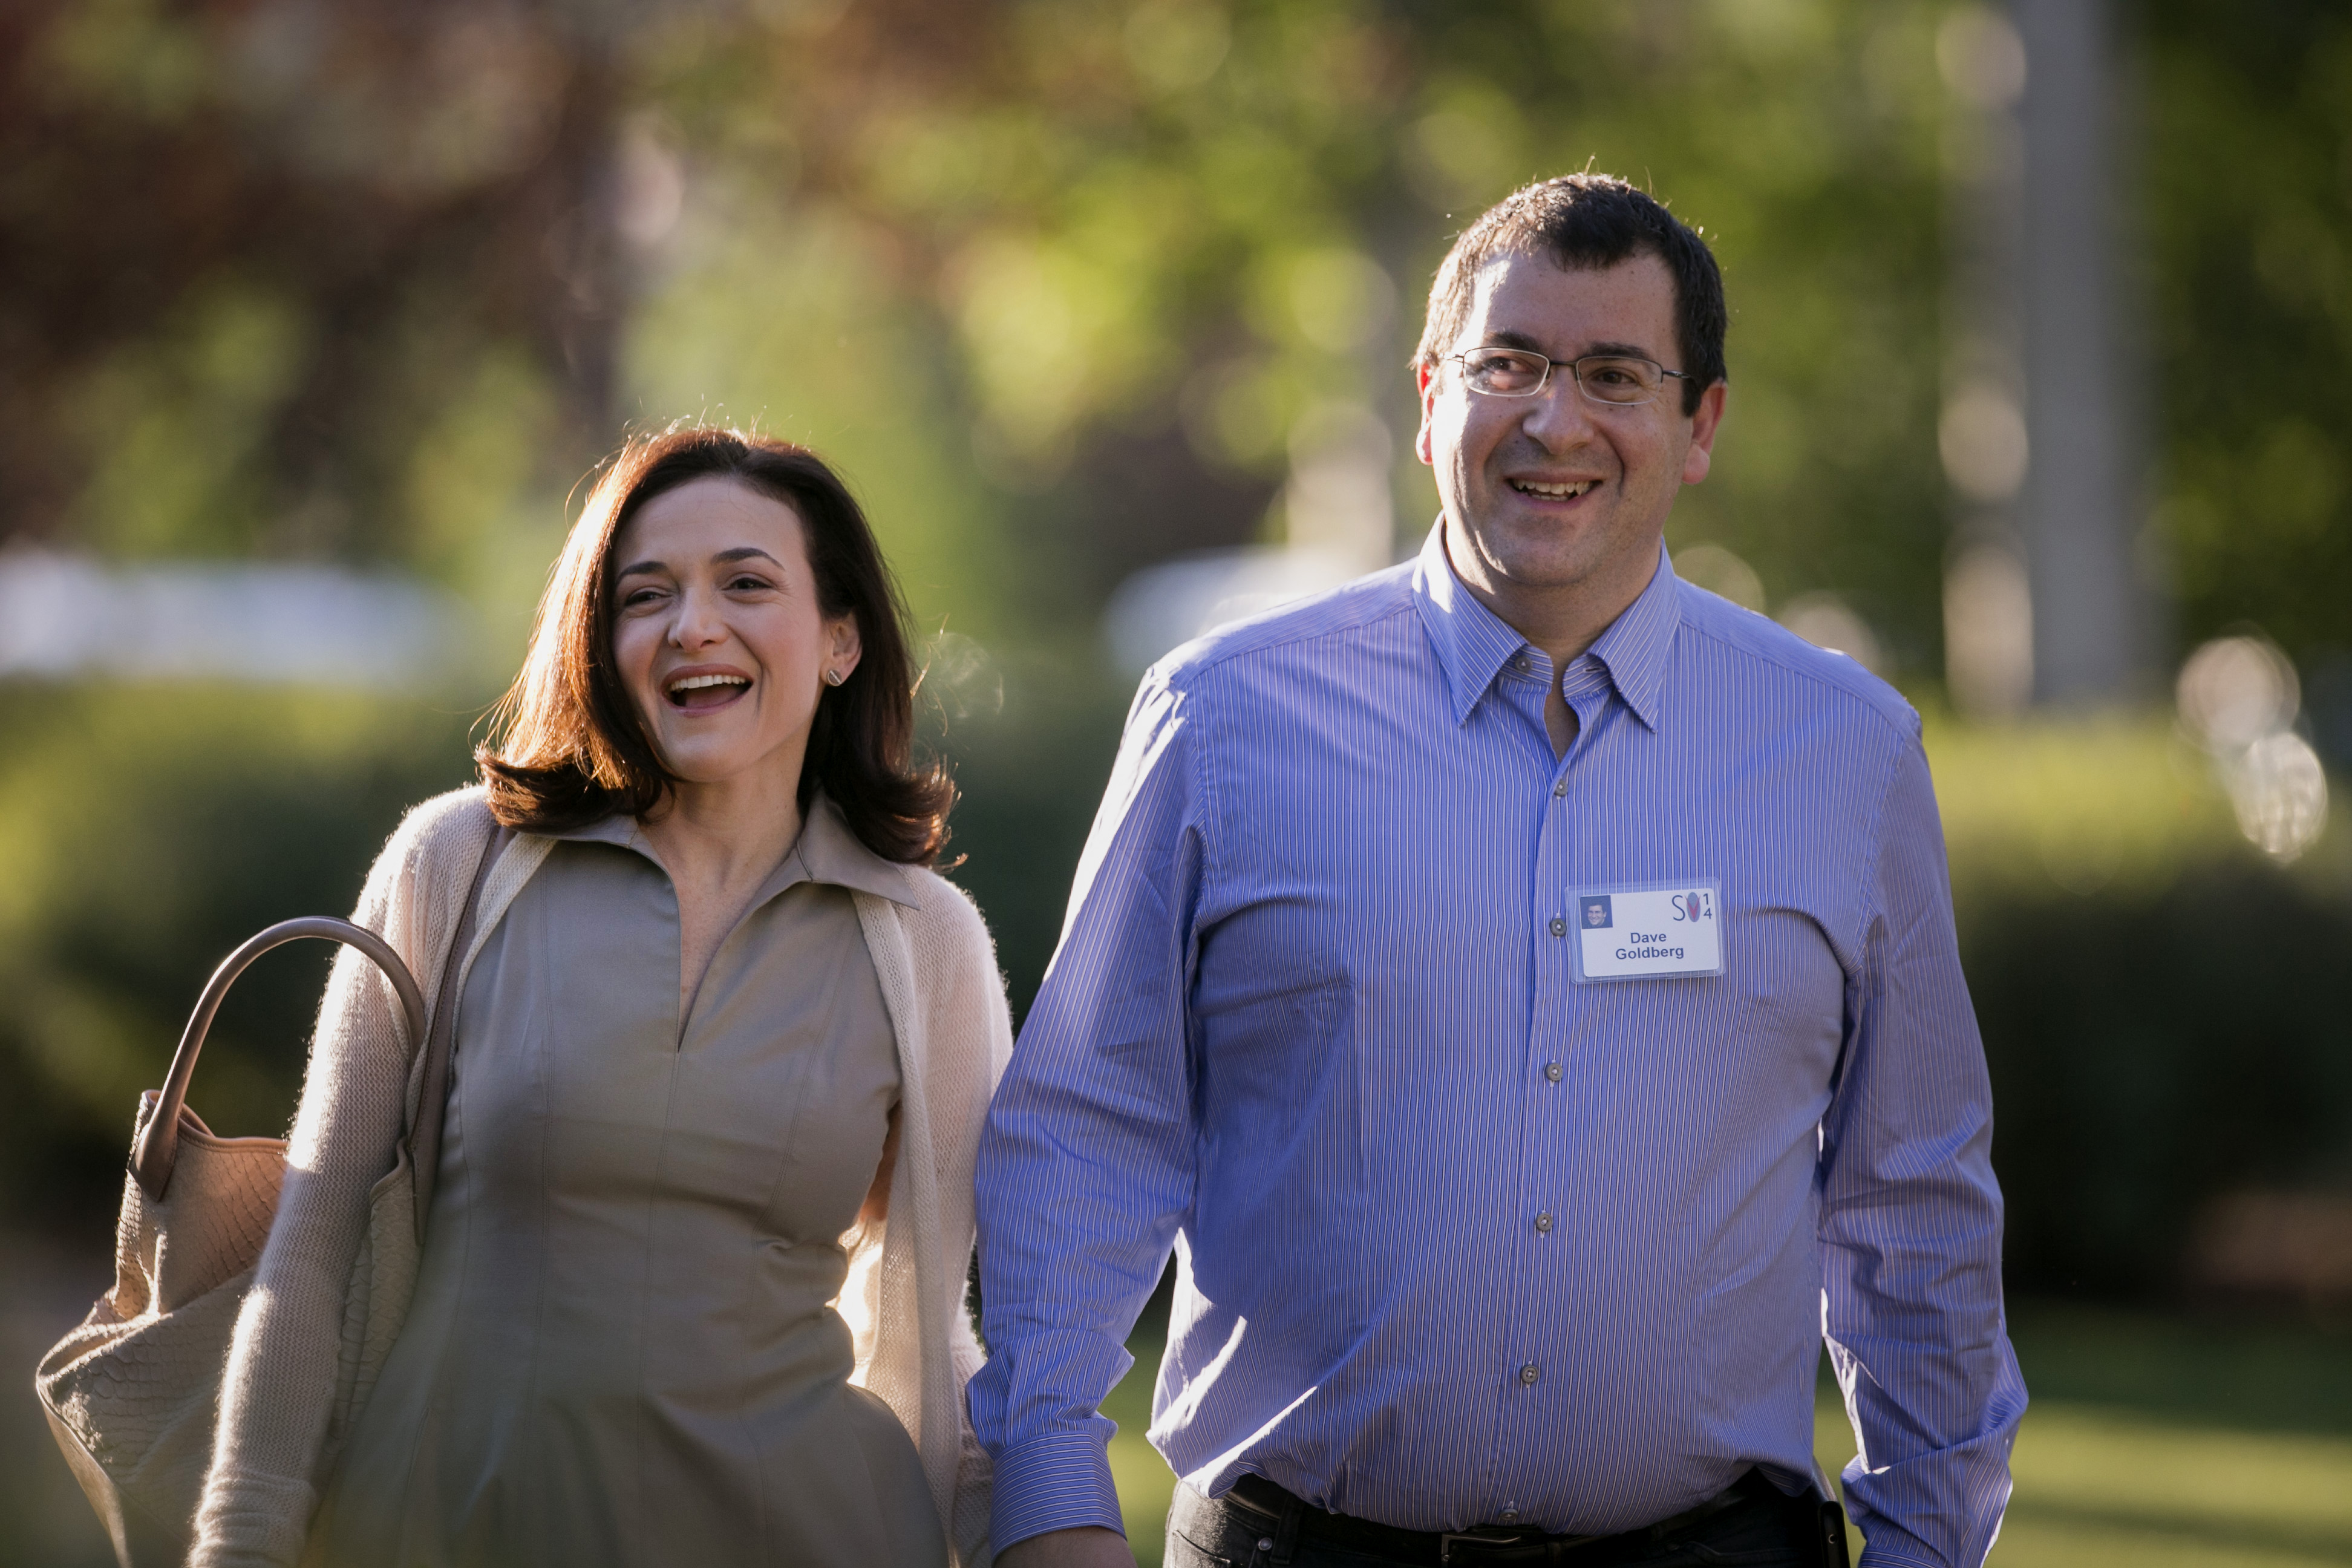 Sheryl Sandberg, chief operating officer of Facebook Inc., left, and her husband David  Dave  Goldberg, chief executive officer of SurveyMonkey, arrive to a morning session at the Sun Valley Lodge during the Allen & Co. Media and Technology Conference in Sun Valley, Idaho, U.S., on Wednesday, July 9, 2014.